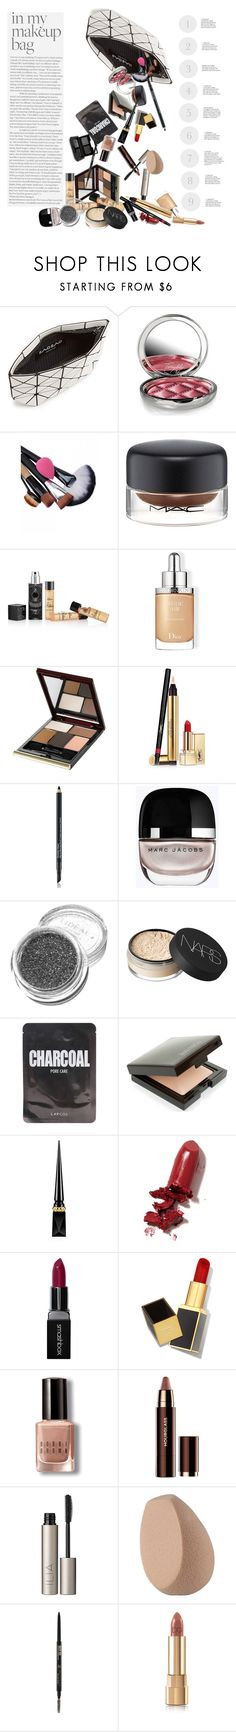 """""""Makeup Bag"""" by marionmeyer ❤ liked on Polyvore featuring beauty, Bao Bao by Issey Miyake, By Terry, MAC Cosmetics, Kilian, Christian Dior, Kevyn Aucoin, Yves Saint Laurent, Estée Lauder and Marc Jacobs"""